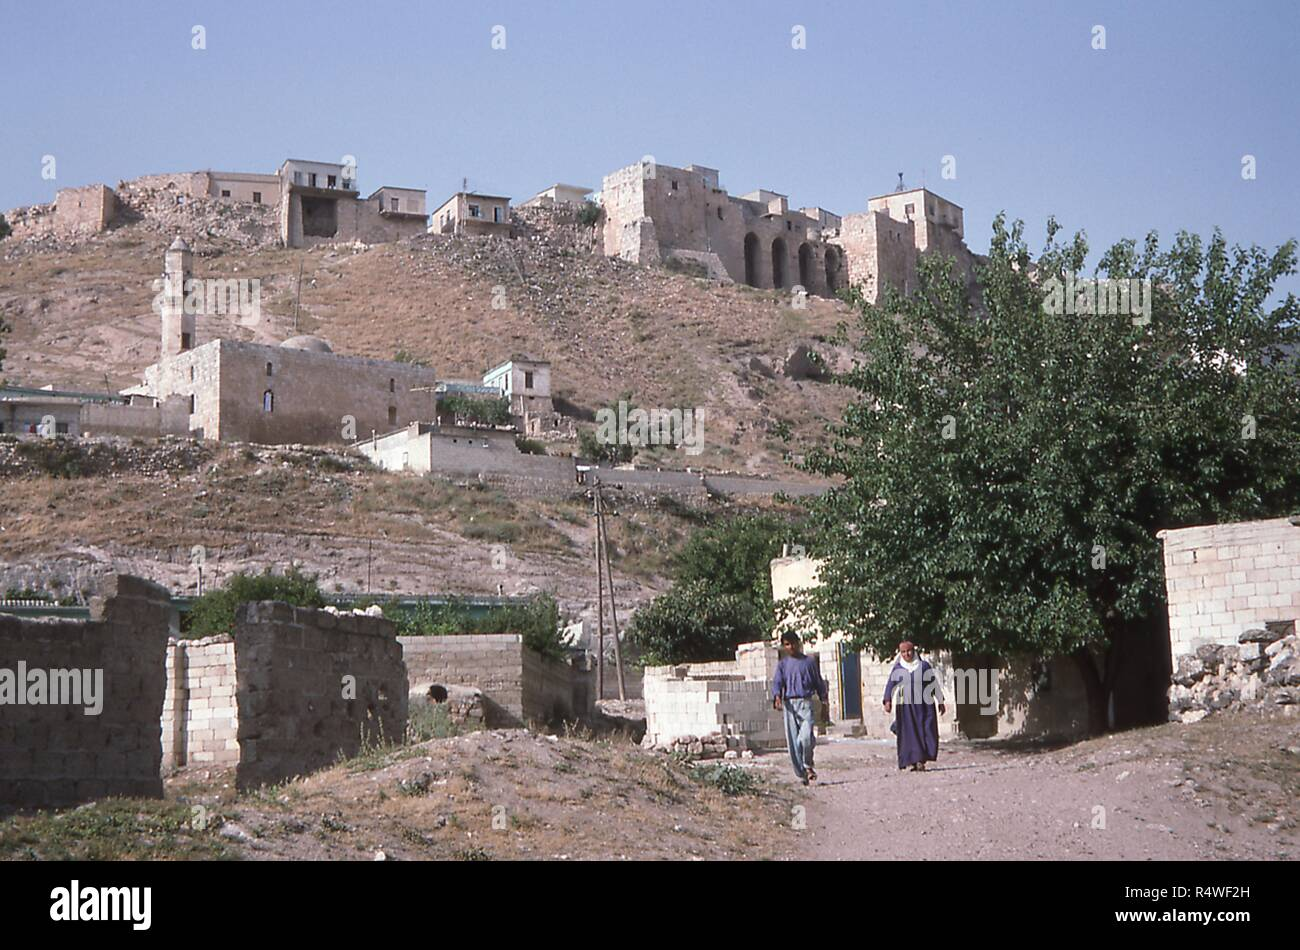 View of local residents walking a dirt road in the inhabited town of Qalaat Al-Madiq, adjacent to the ancient ruins of Apamea, Syria, June, 1994. () - Stock Image